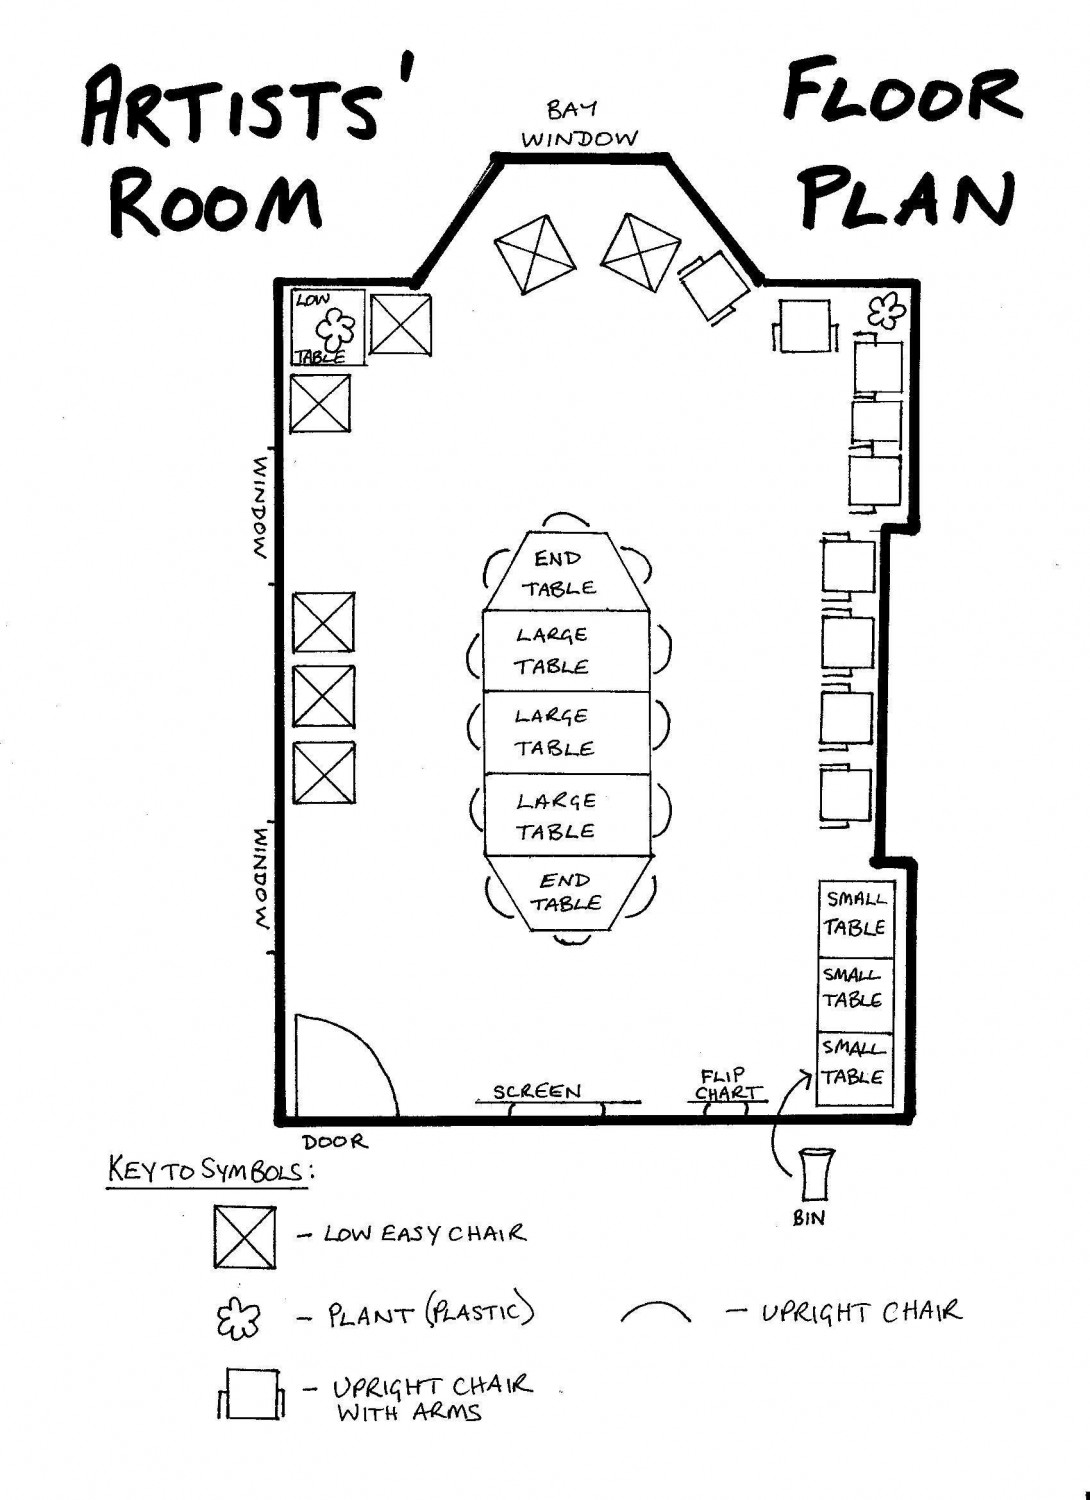 Floor Plan - Artists' Room